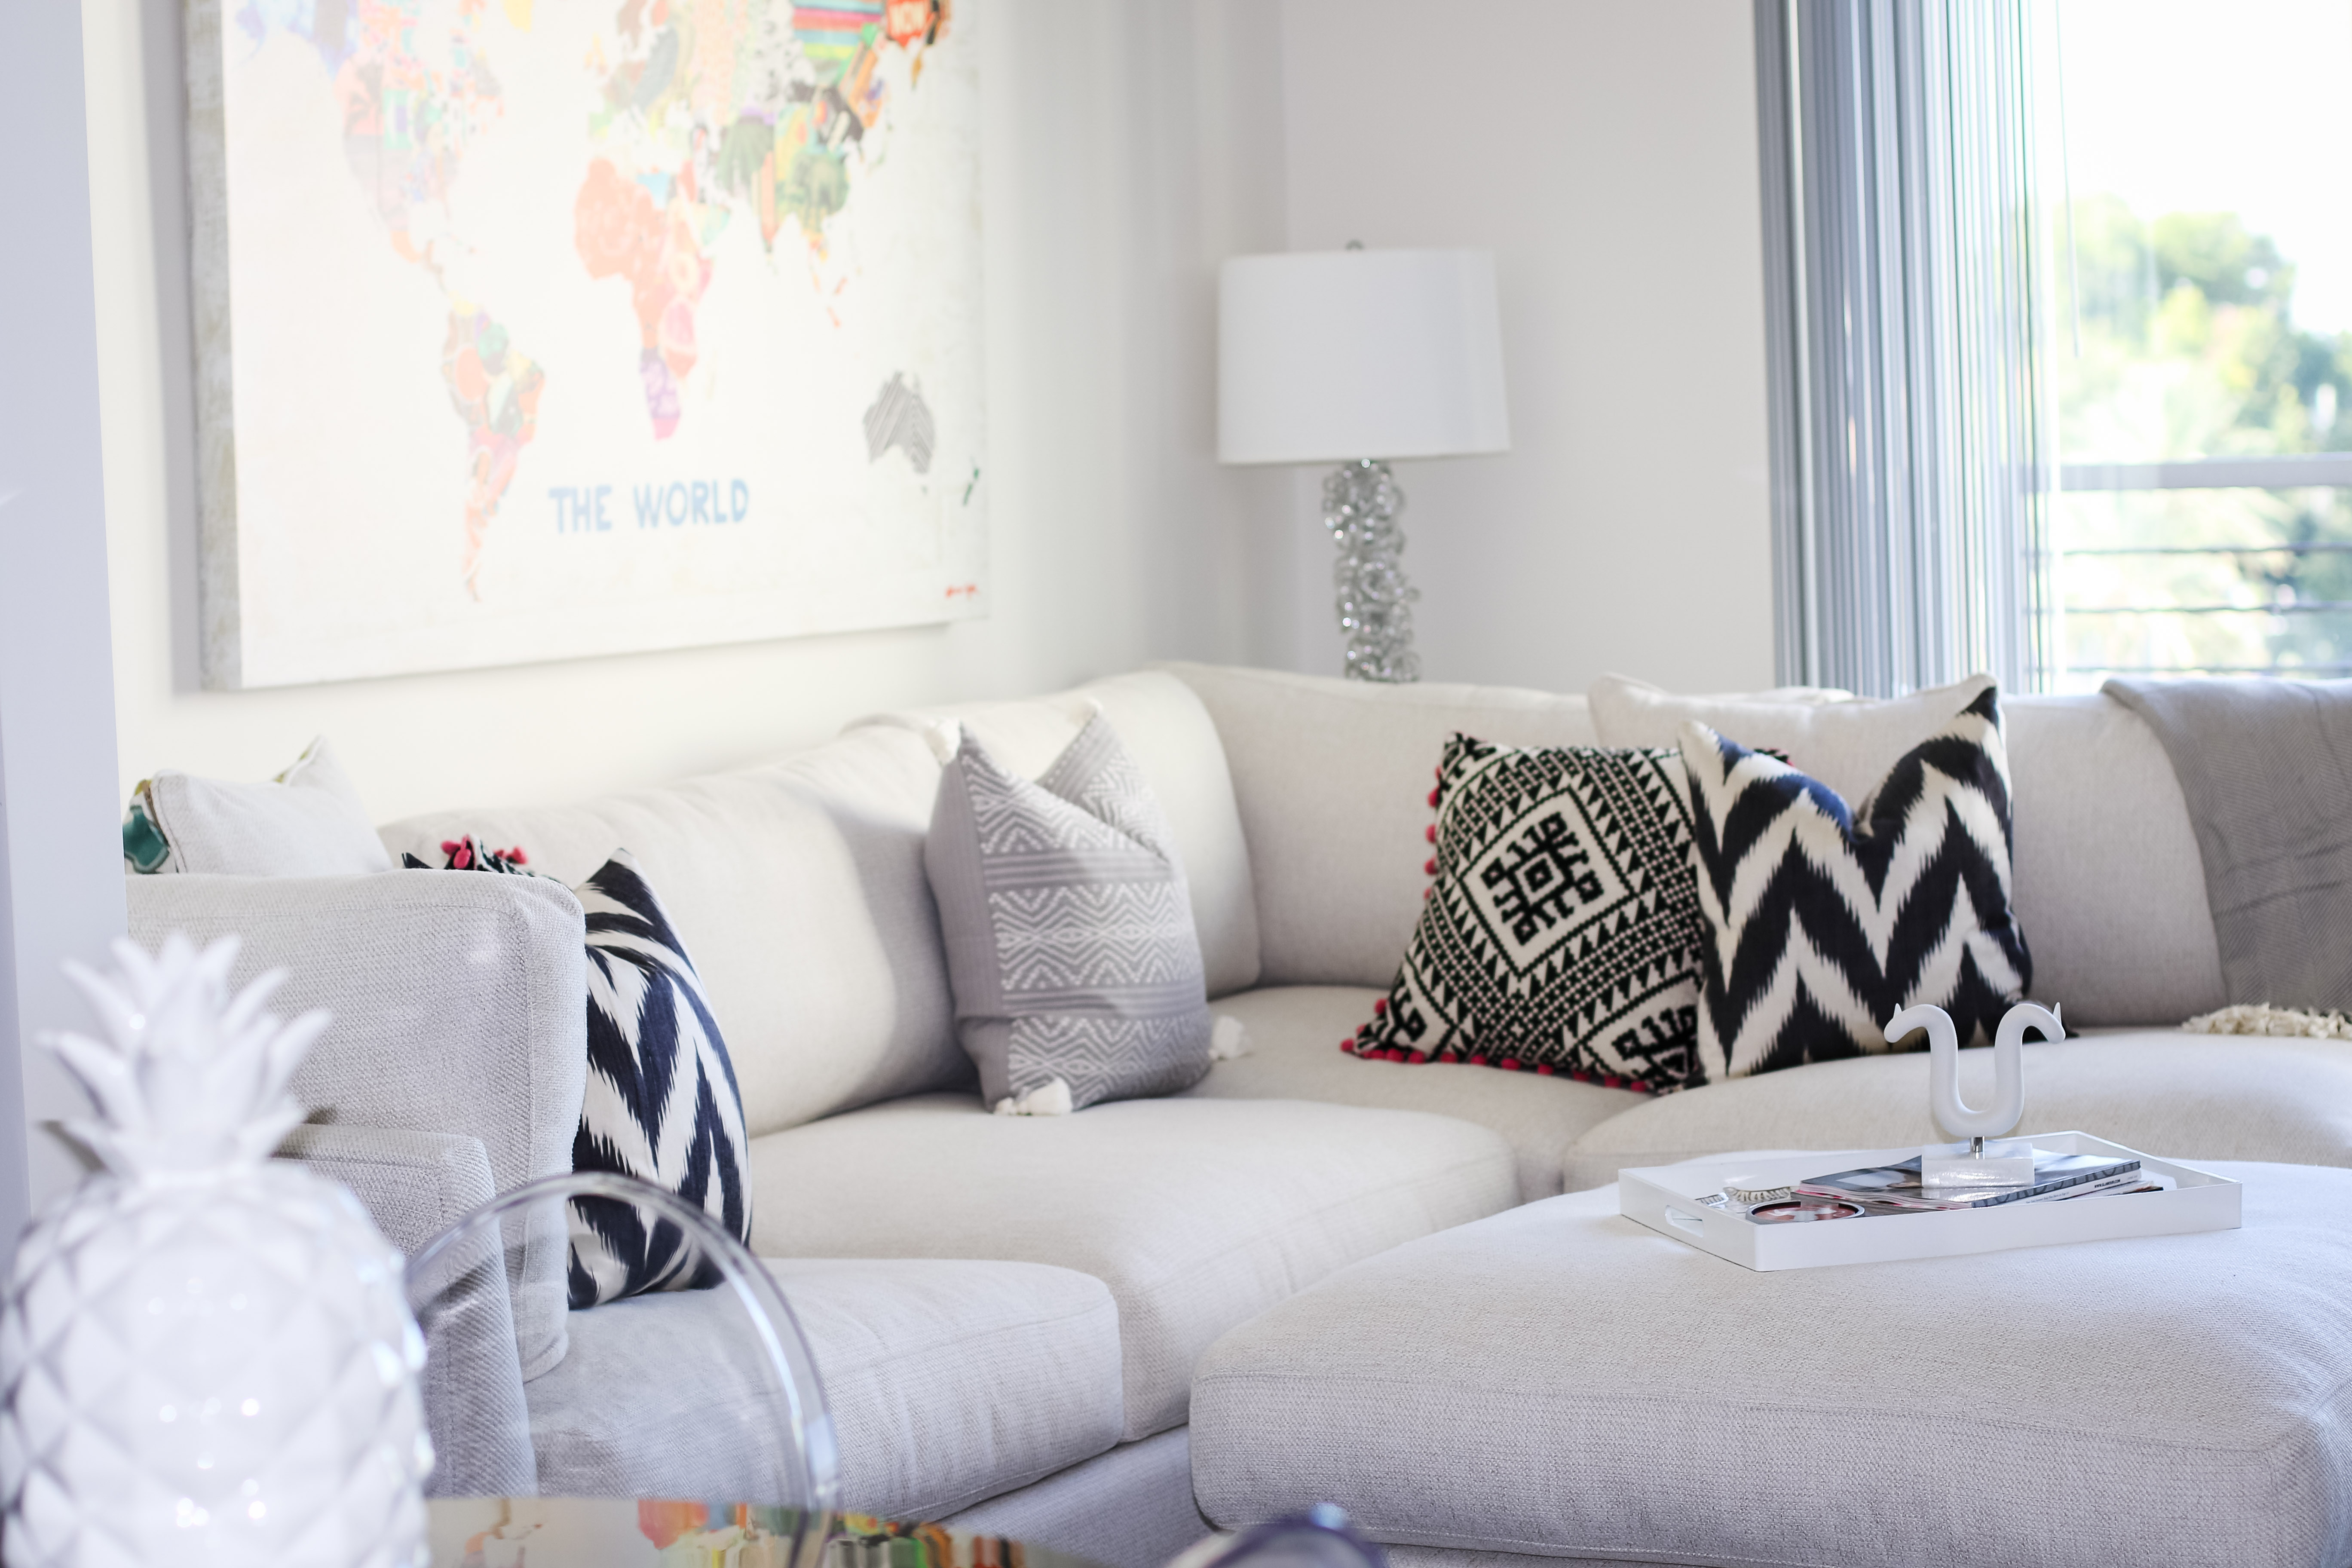 Style at home lulu georgia shop dandy a florida for International decor outlet georgia